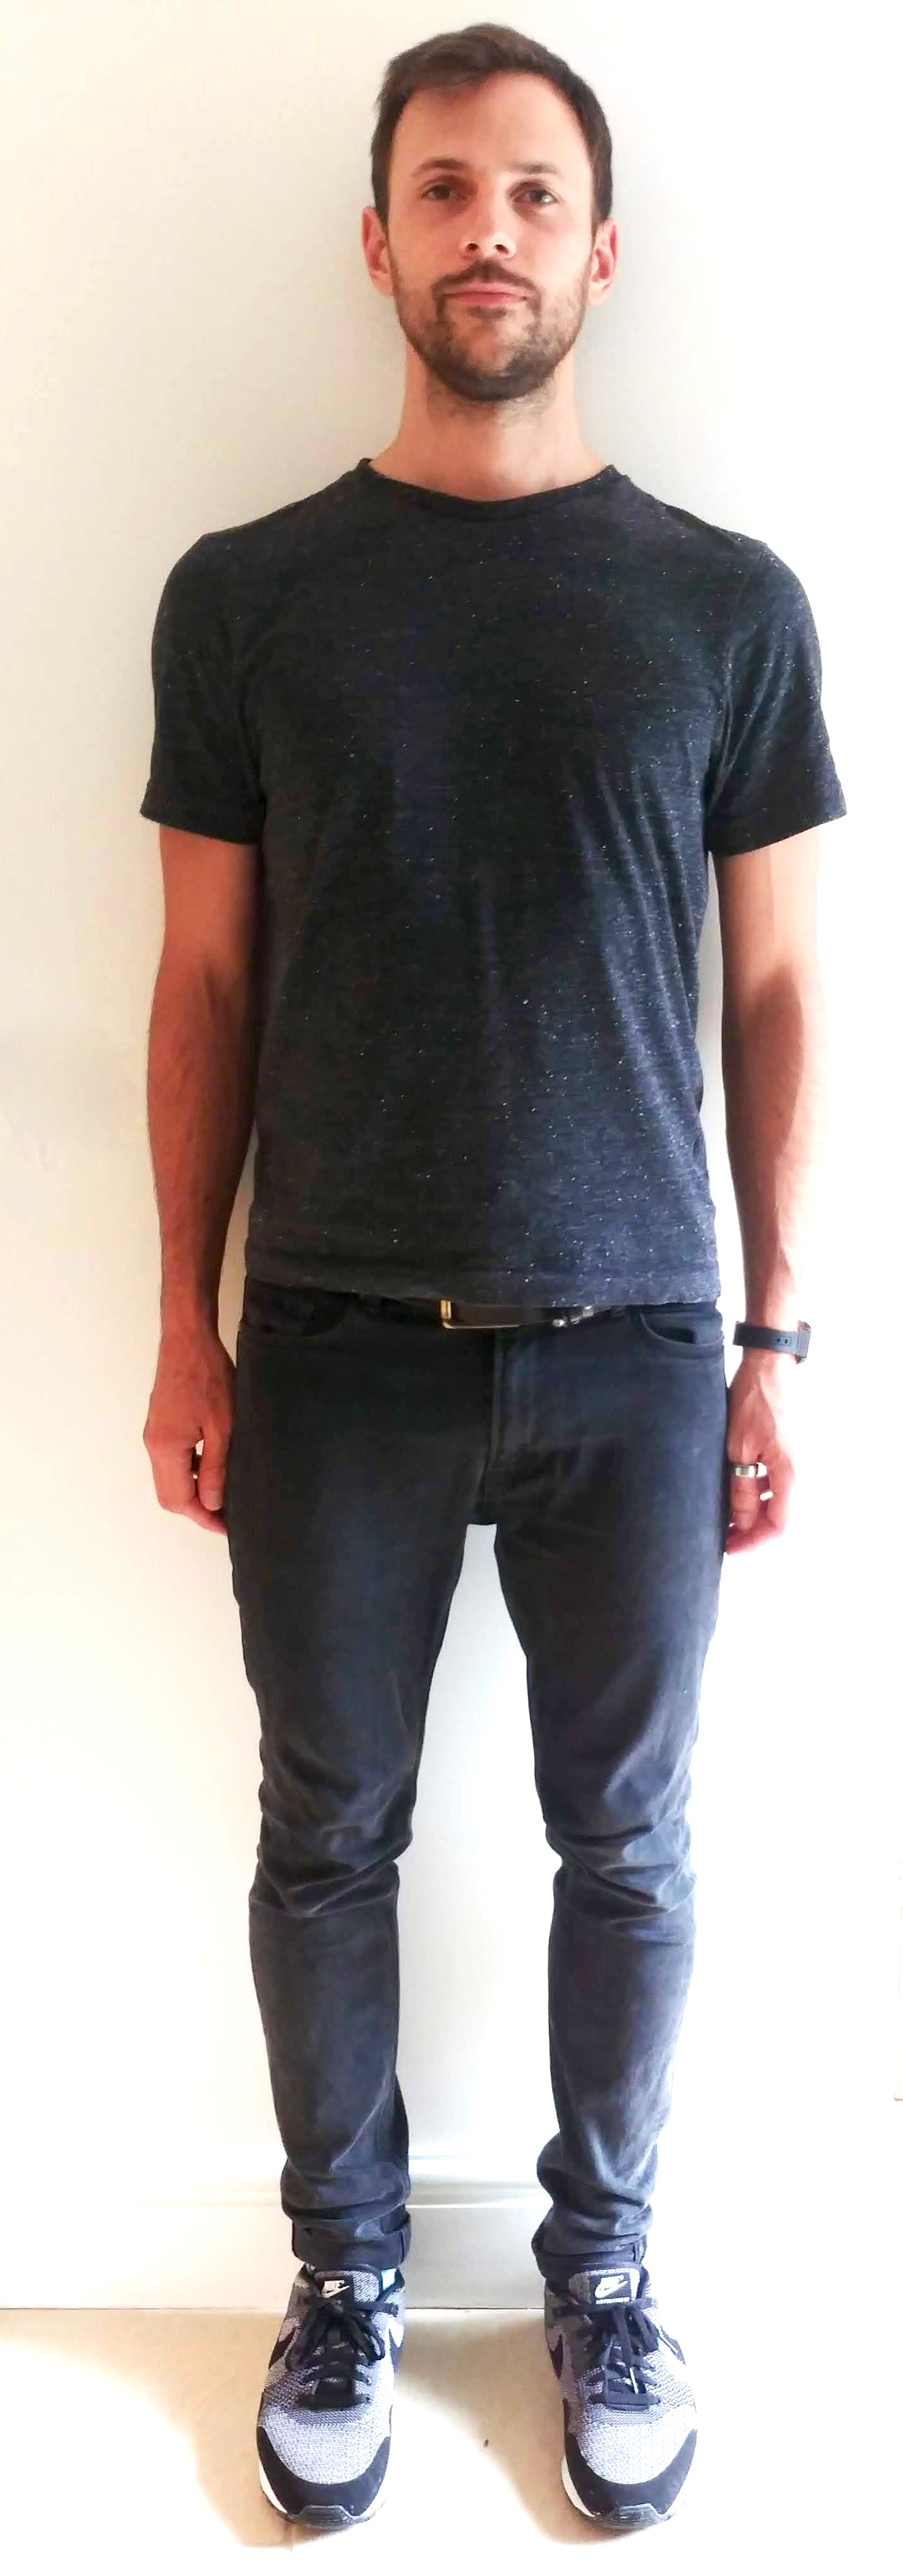 Better posture, front view of a natural standing position image